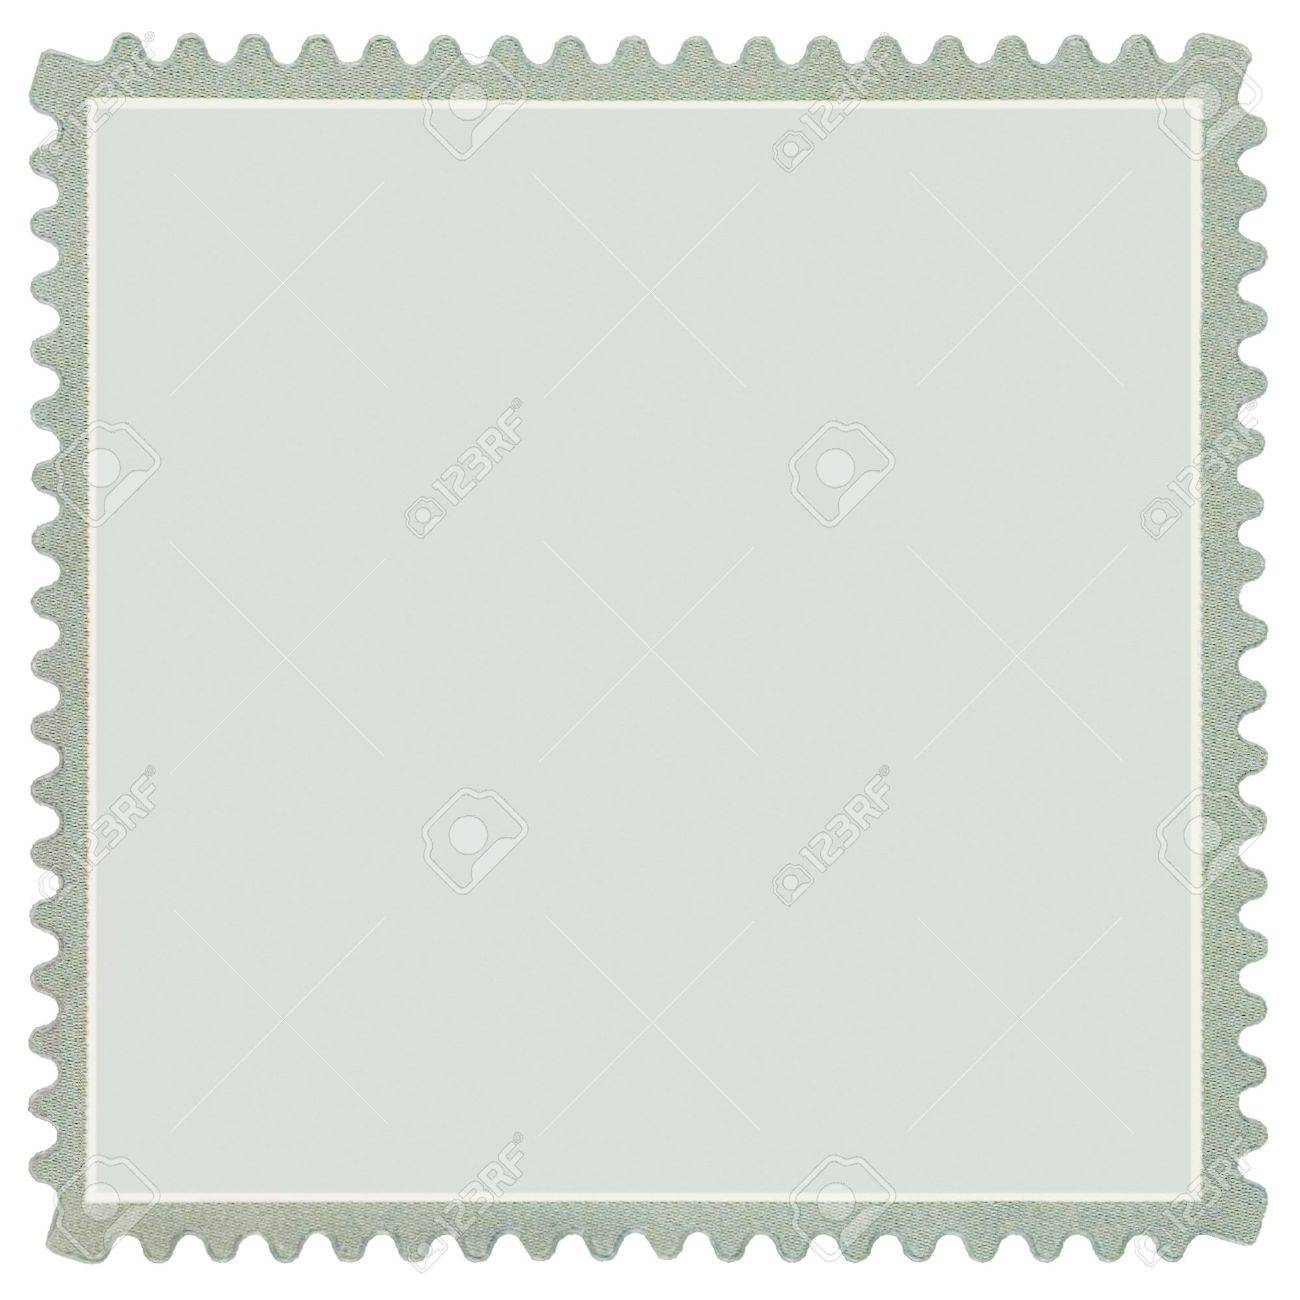 Square Blank Postage Stamp, Light Pale Green Macro, Isolated Stock Photo - 8101392